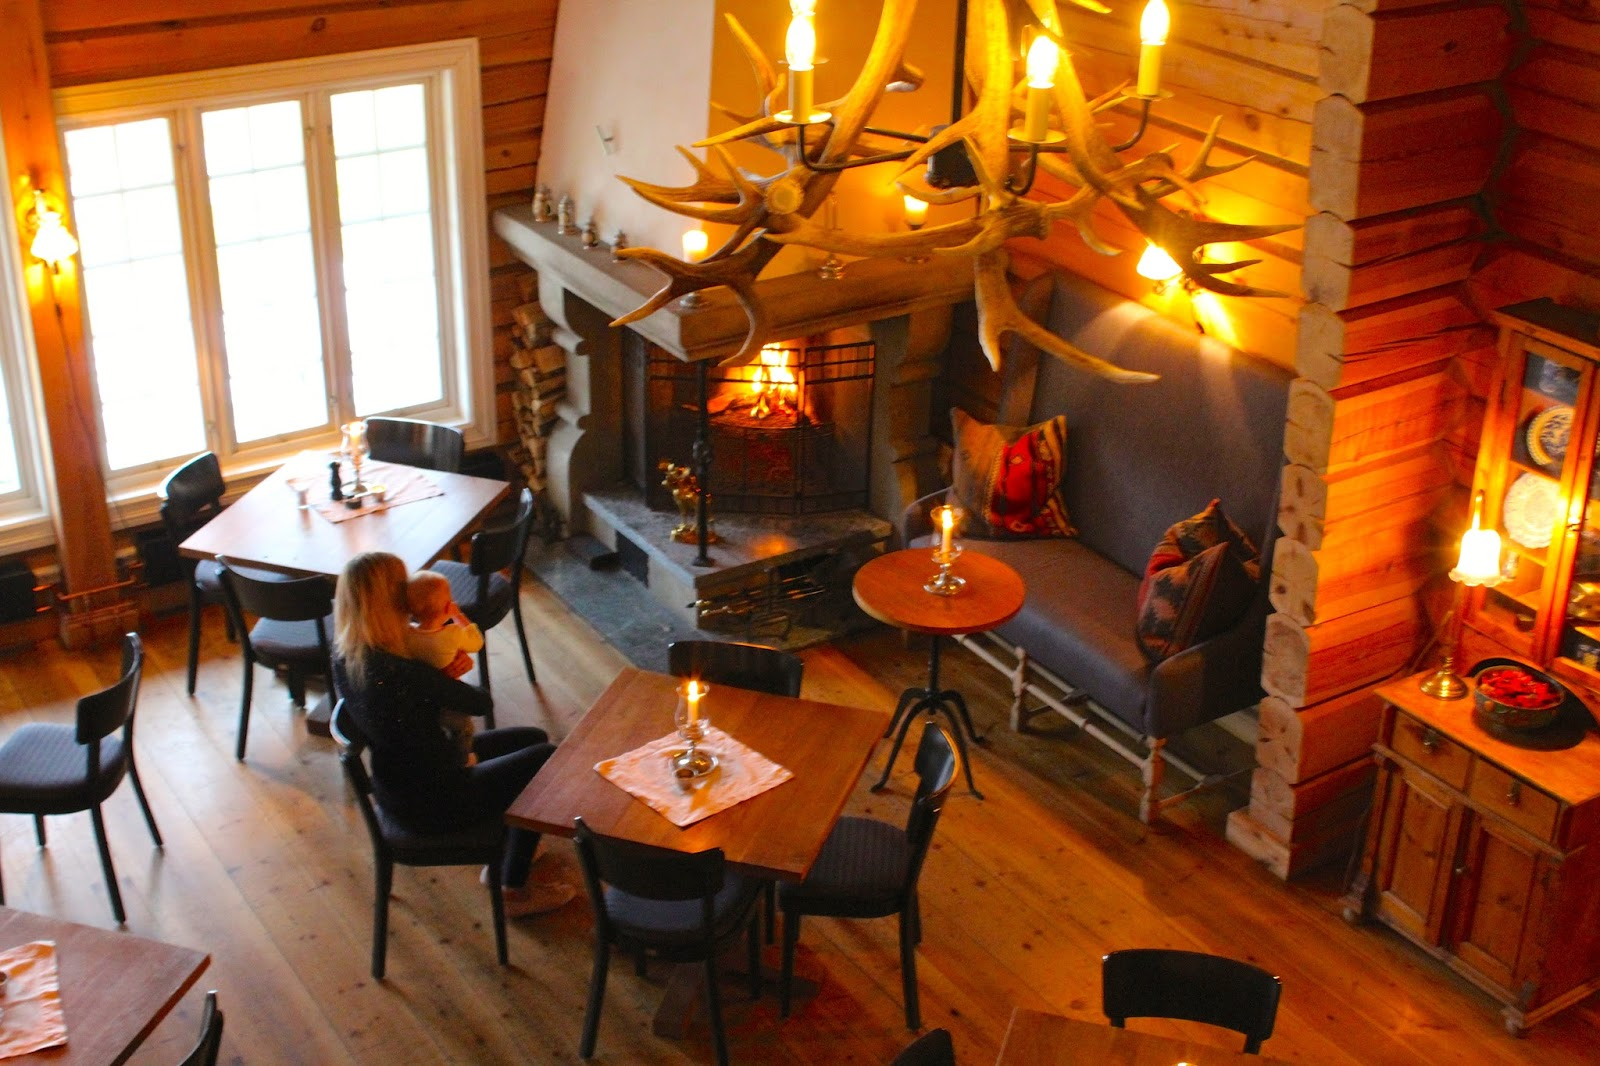 Achieving Hygge at the Storfjord Hotel